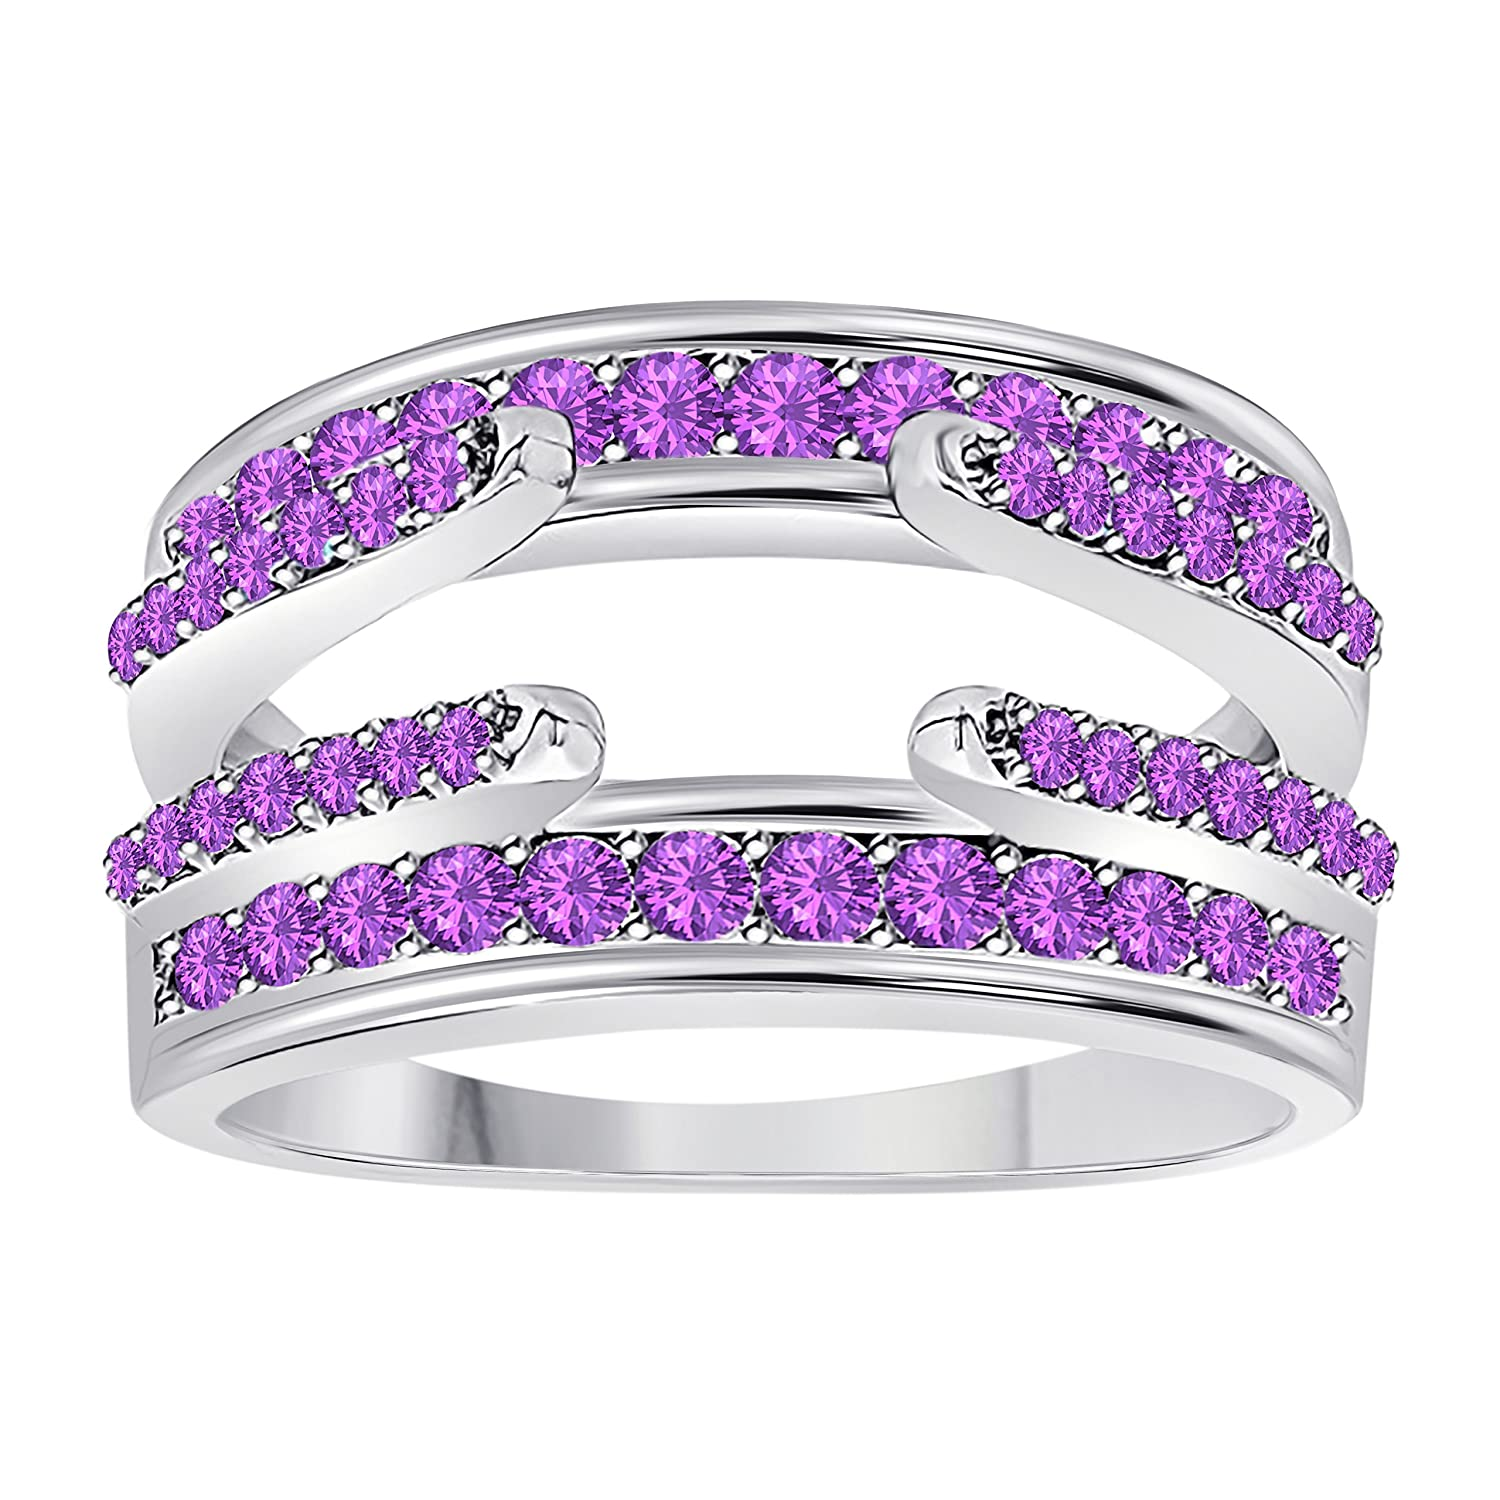 .925 Sterling Silver Plated Combination Curved Style Cathedral Wedding Ring Guard Enhancer with CZ Purple Amethyst (1.10 ct. tw.) Star Retail SRFiftythree-25